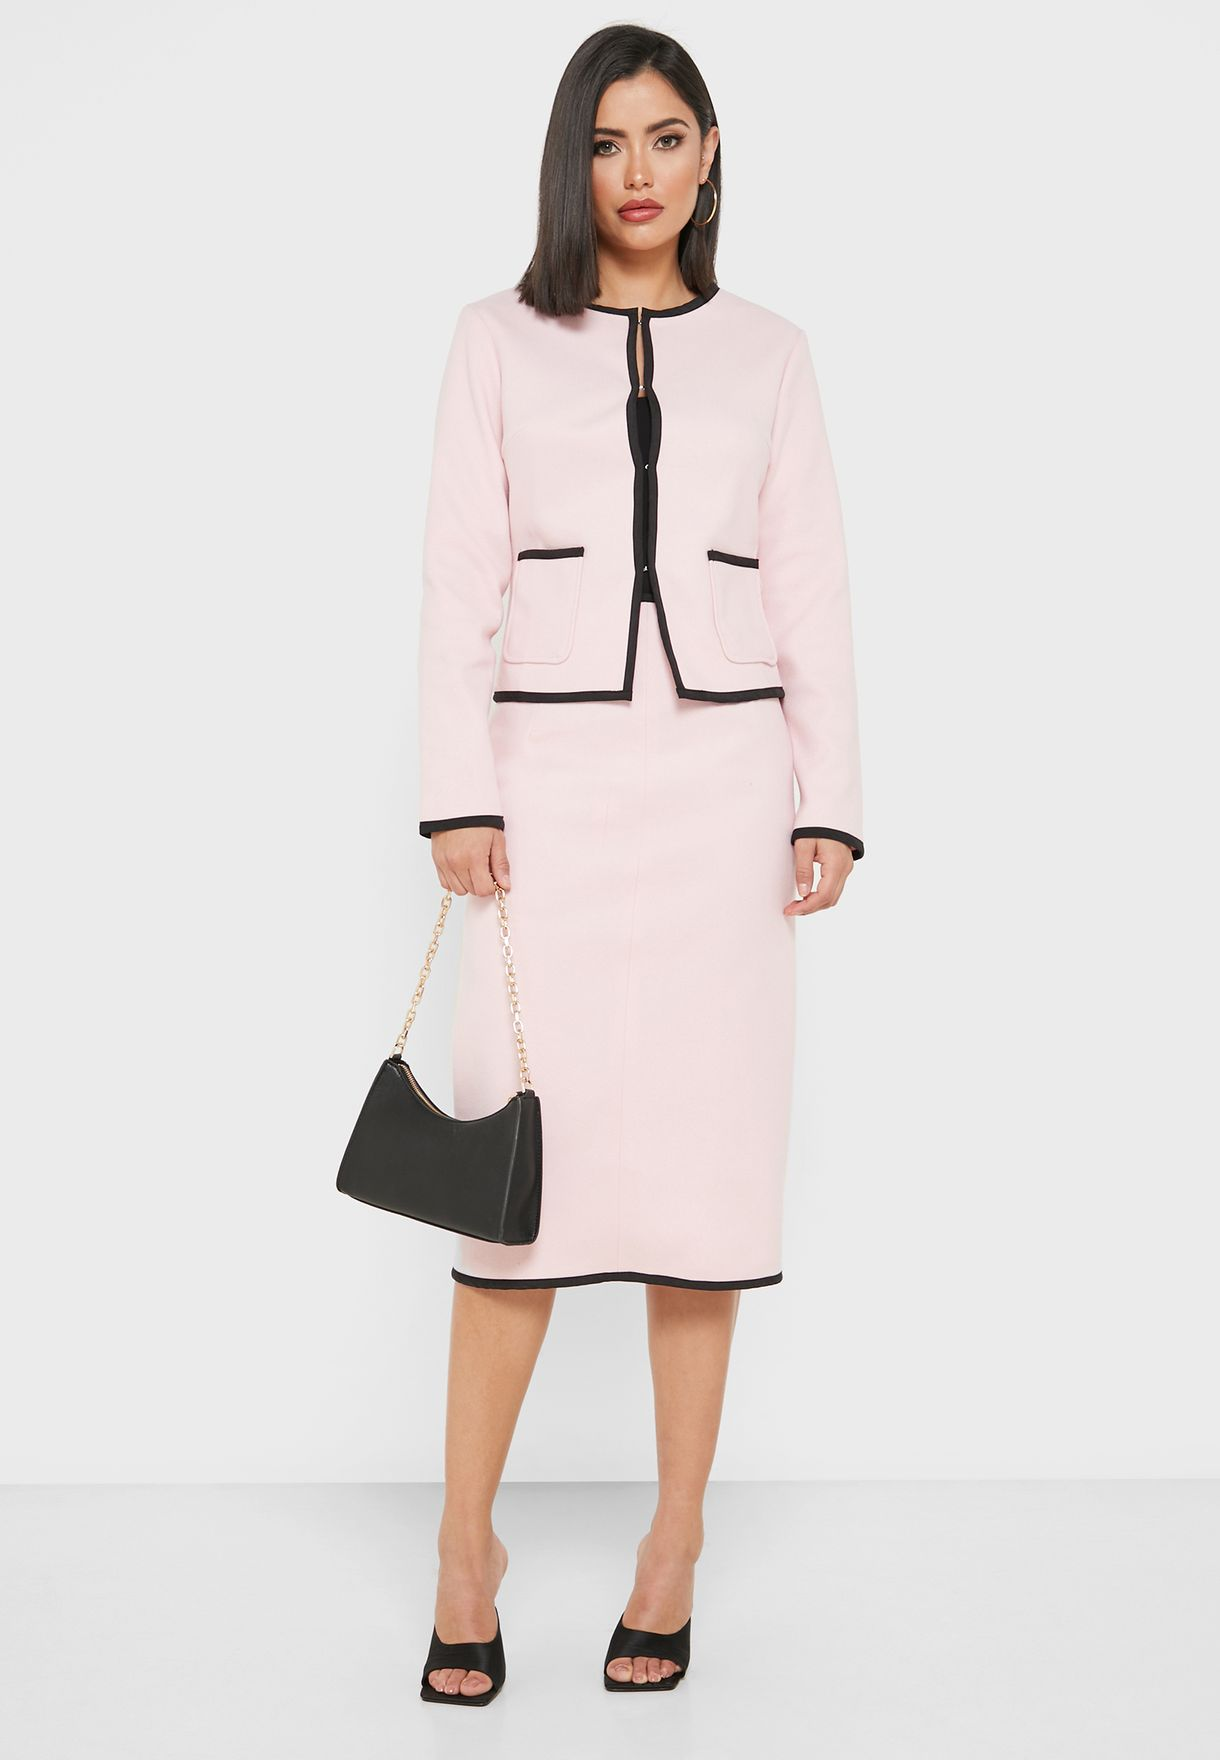 Tailored Contrast Trim Blazer Midi Skirt Set